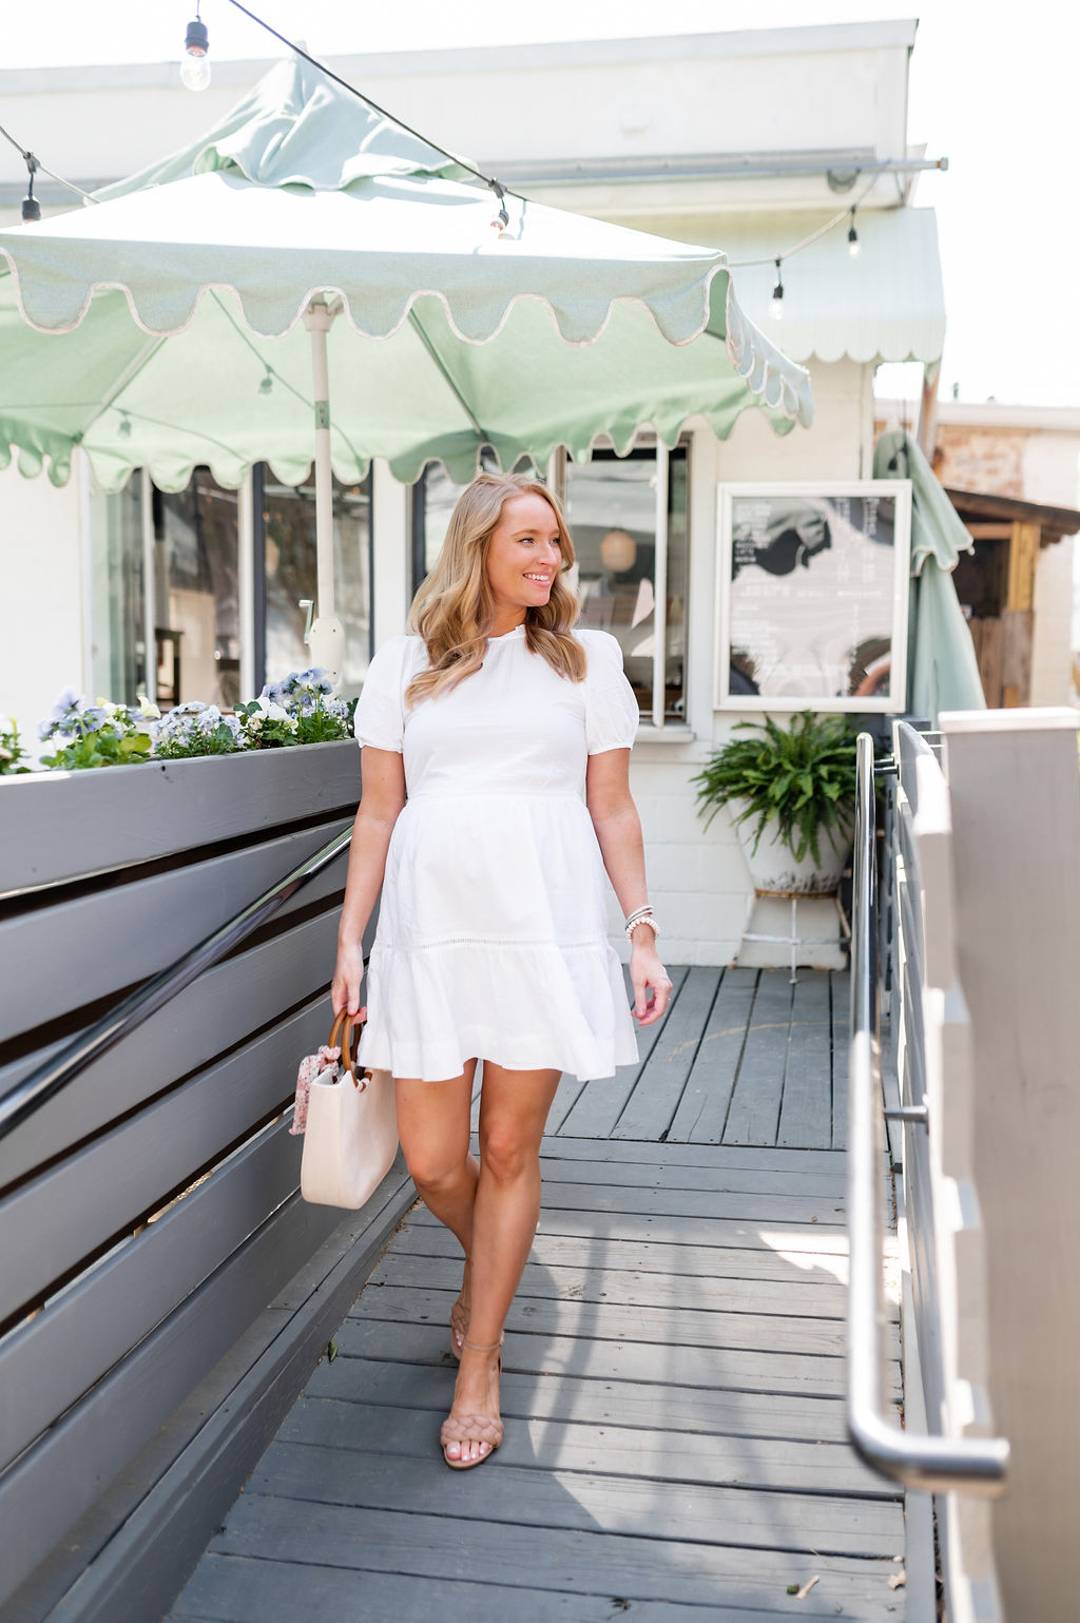 Hacks to Dress for Hot Weather, wear a white dress